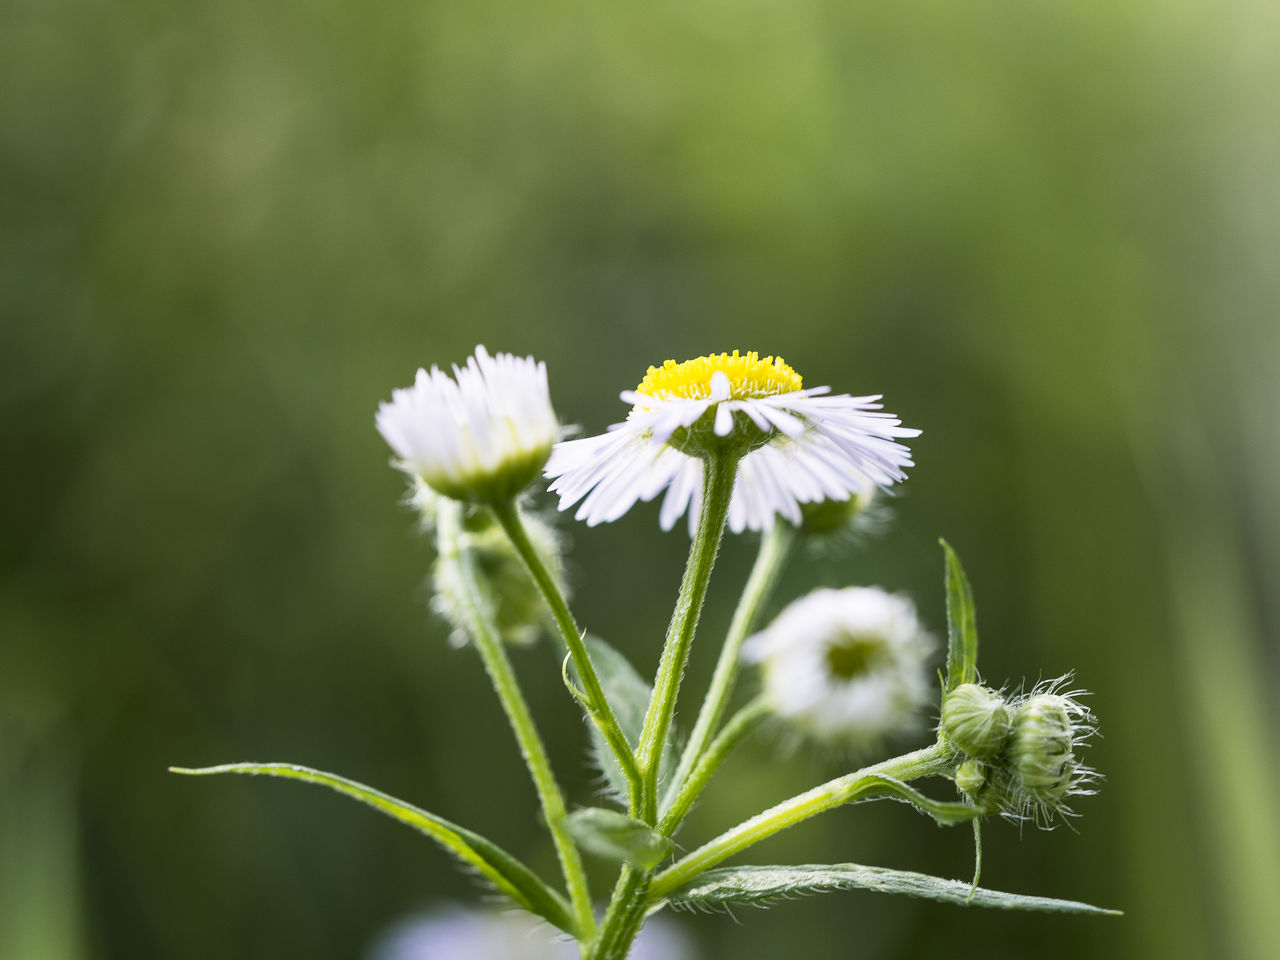 Close-up of white daisies growing outdoors